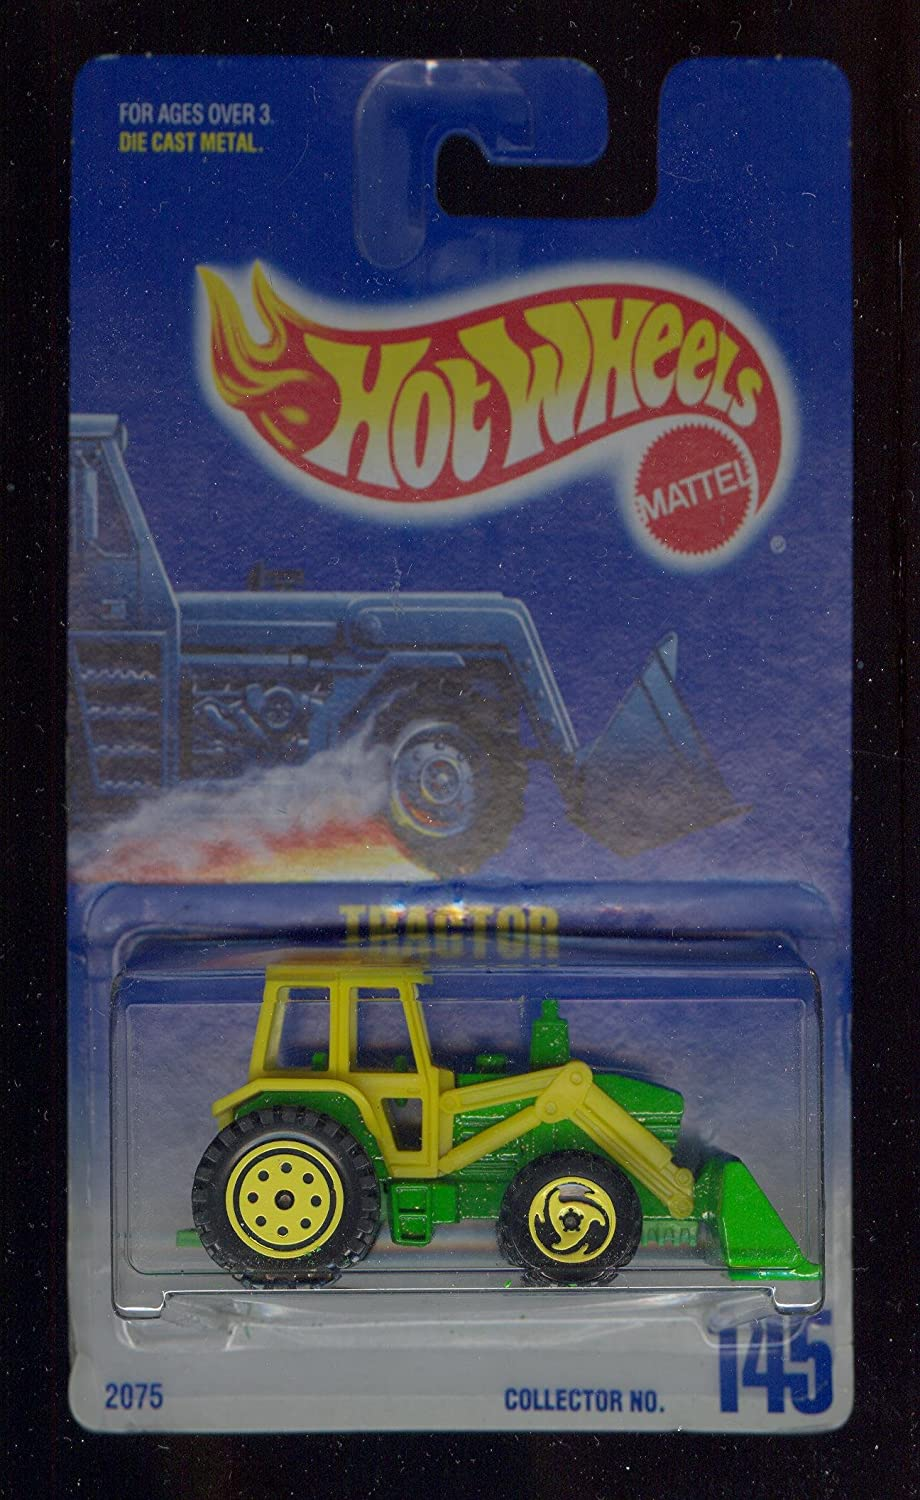 Hot Wheels 1991  145 TRACTOR Grün & Gelb 1:64 Scale by Mattel